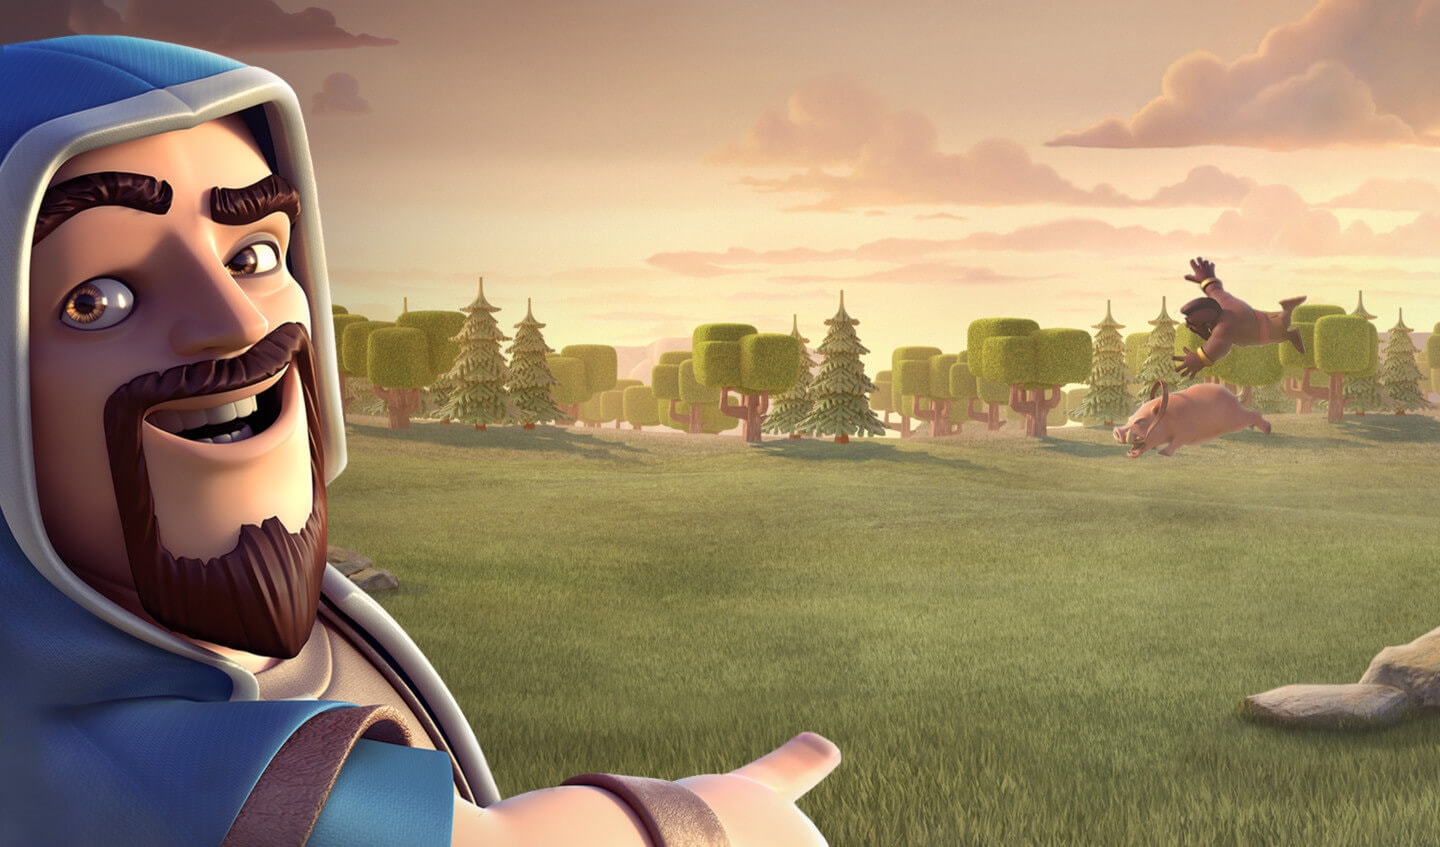 Clash of Clans Funny Wizard Wallpaper